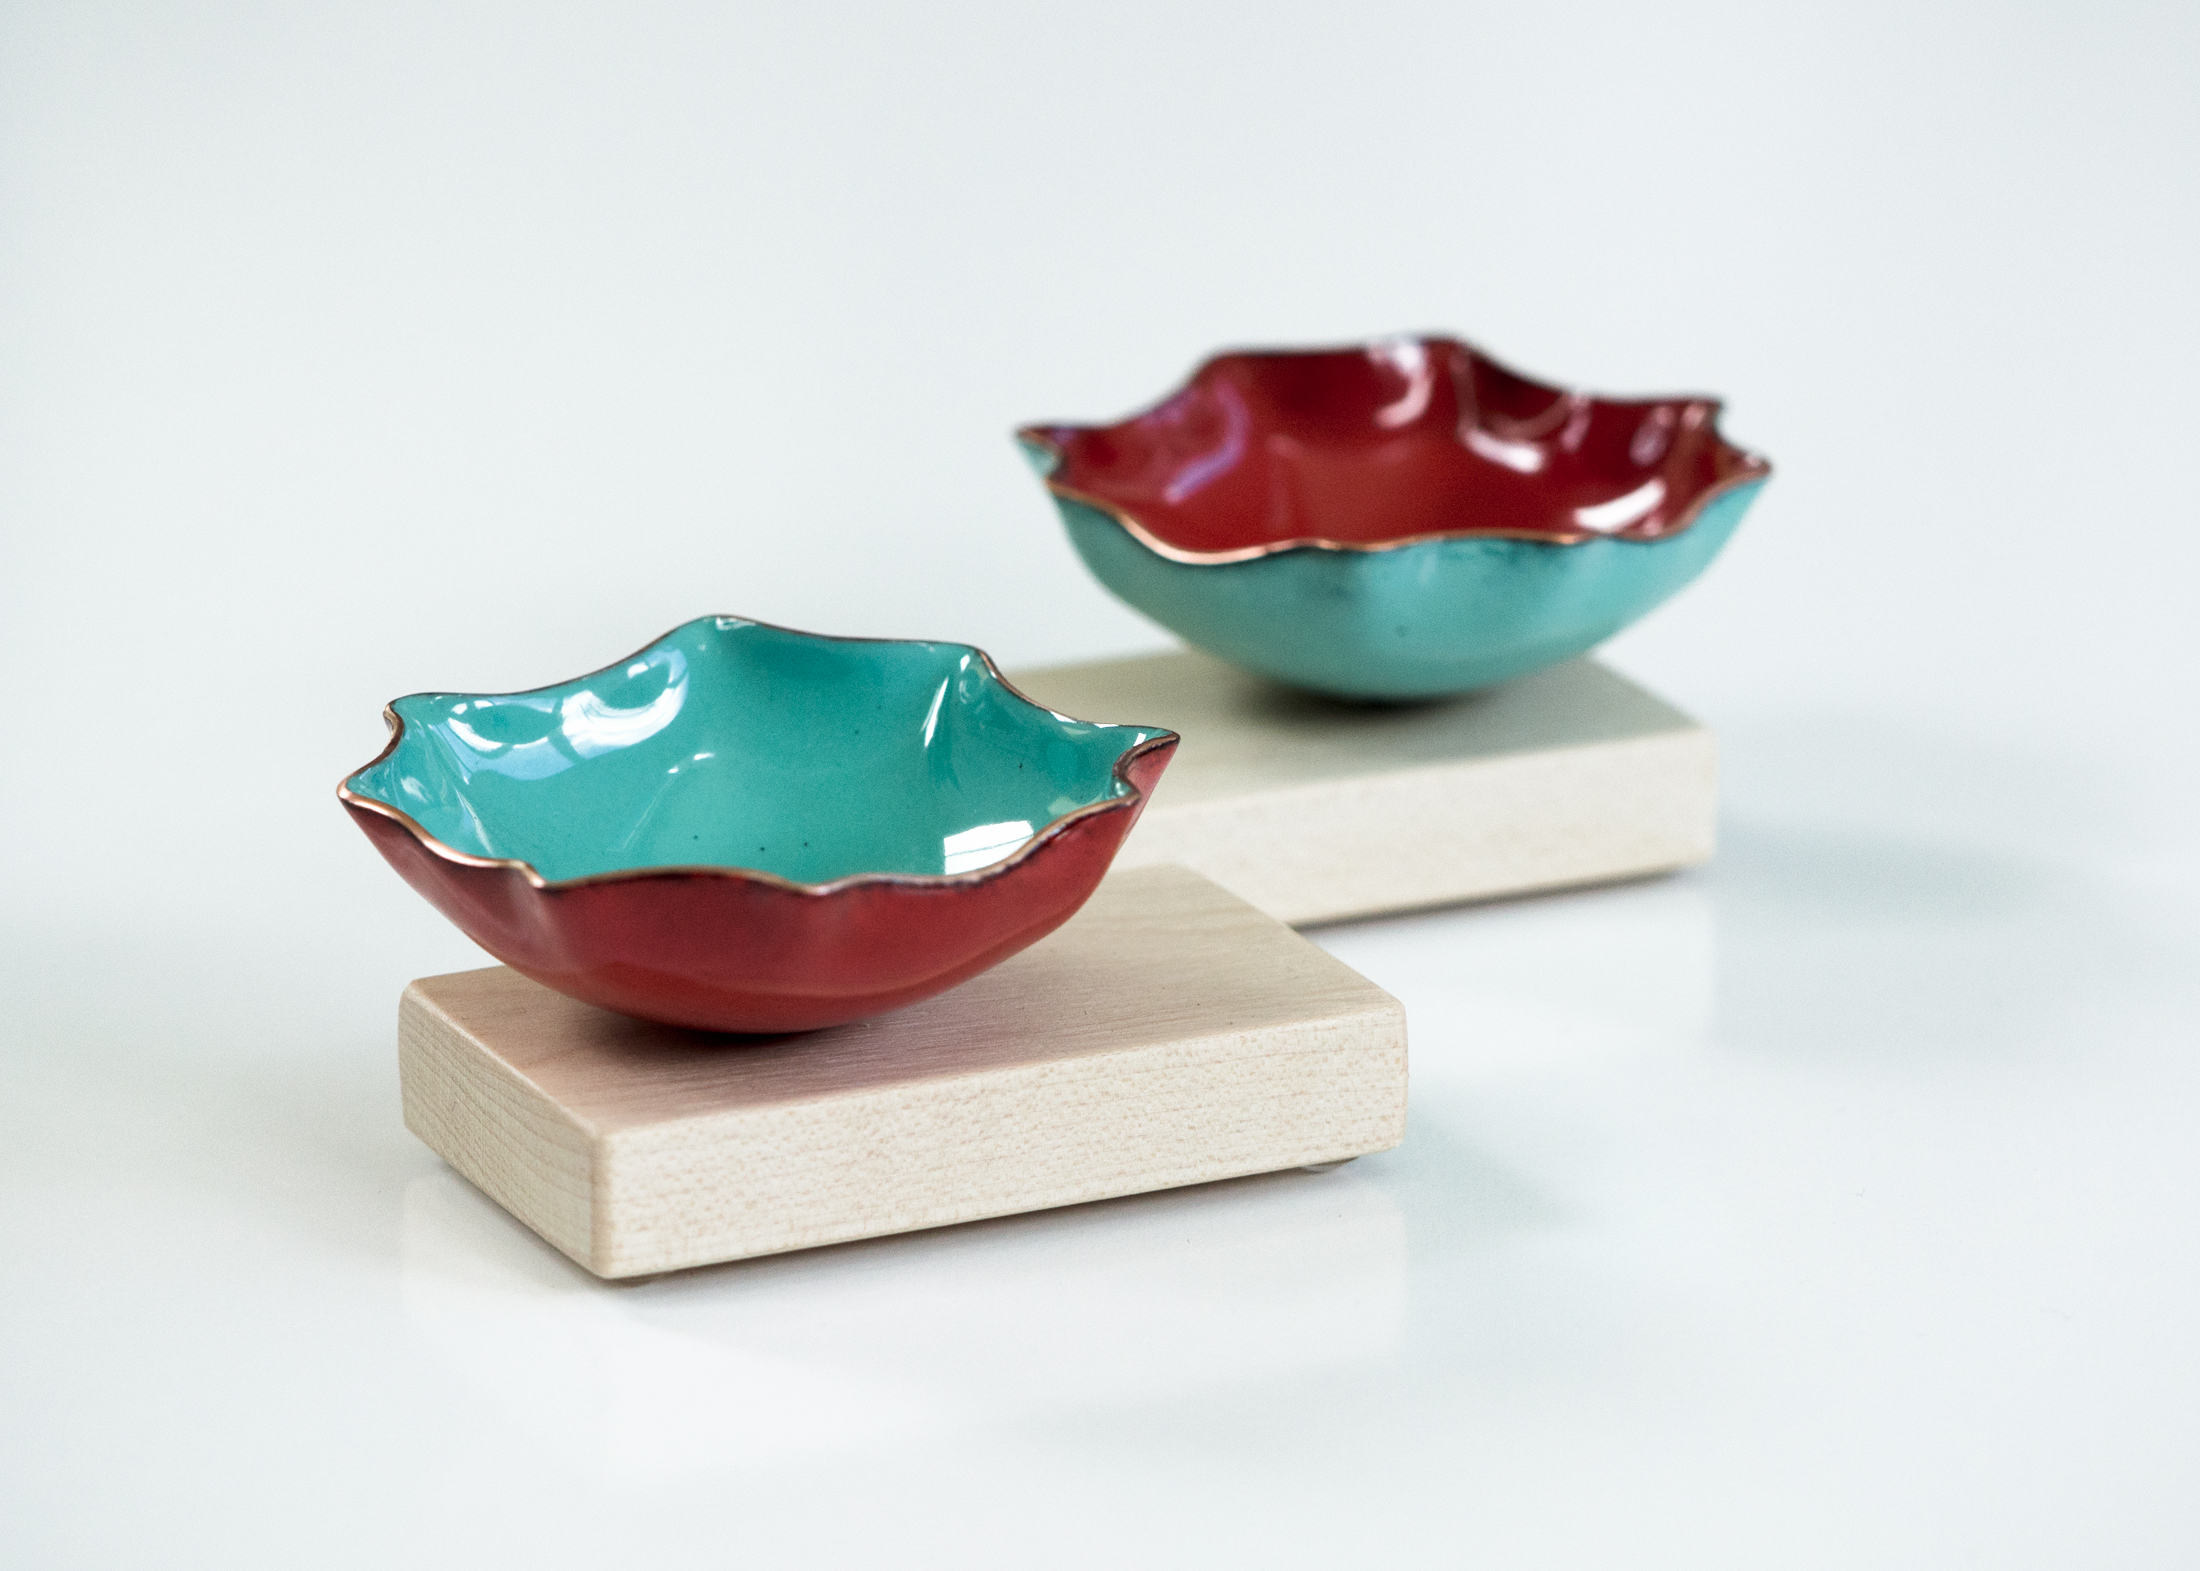 cg-grisez_bitty-bowl-with-wood-base-red-turquoise.jpg